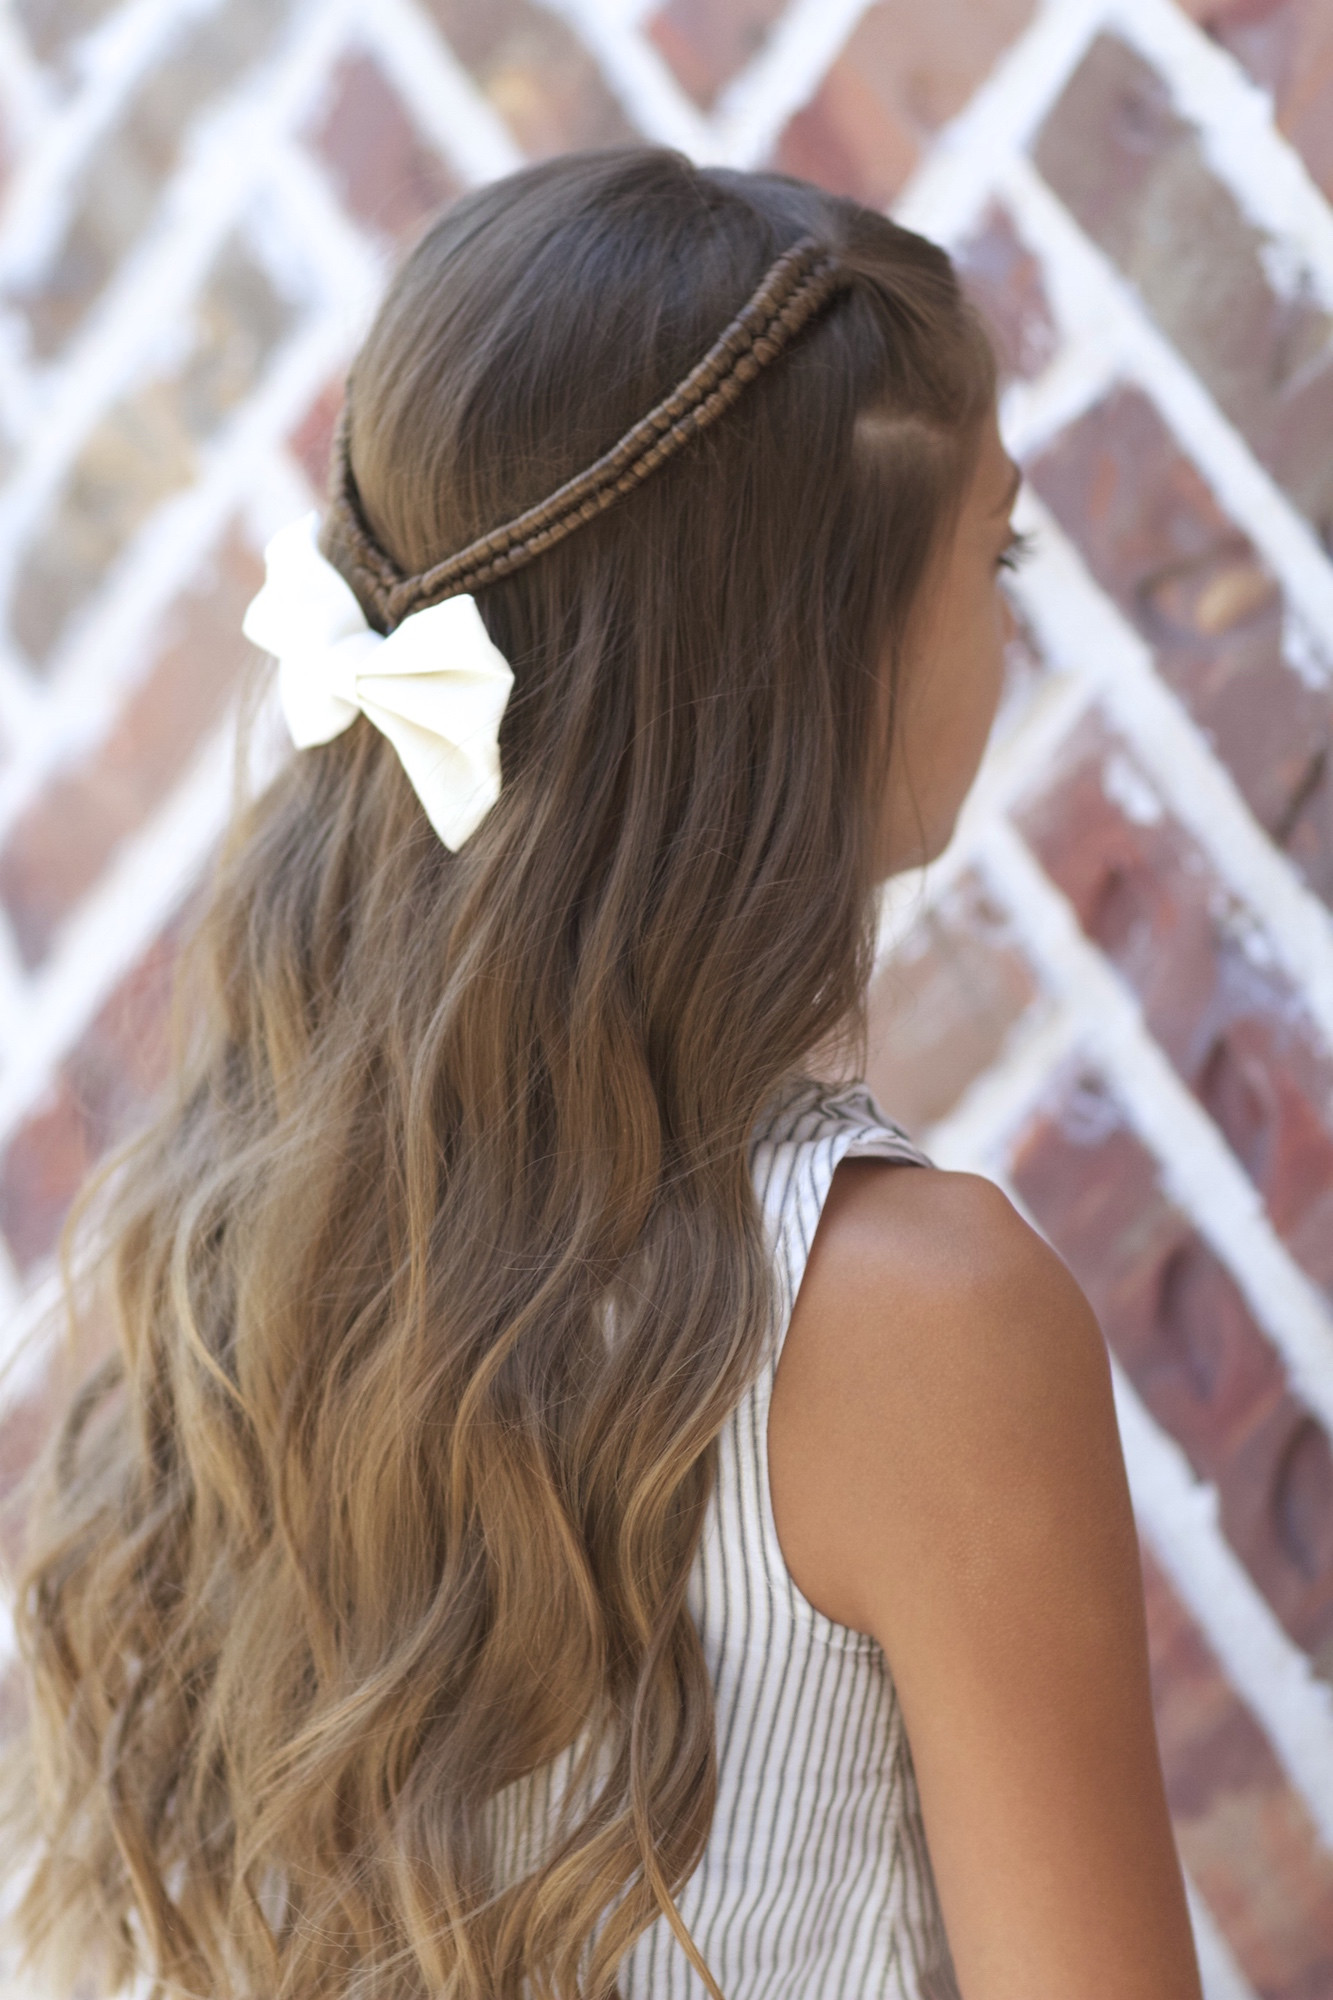 Best ideas about Hairstyles For School Girls . Save or Pin Infinity Braid Tieback Back to School Hairstyles Now.